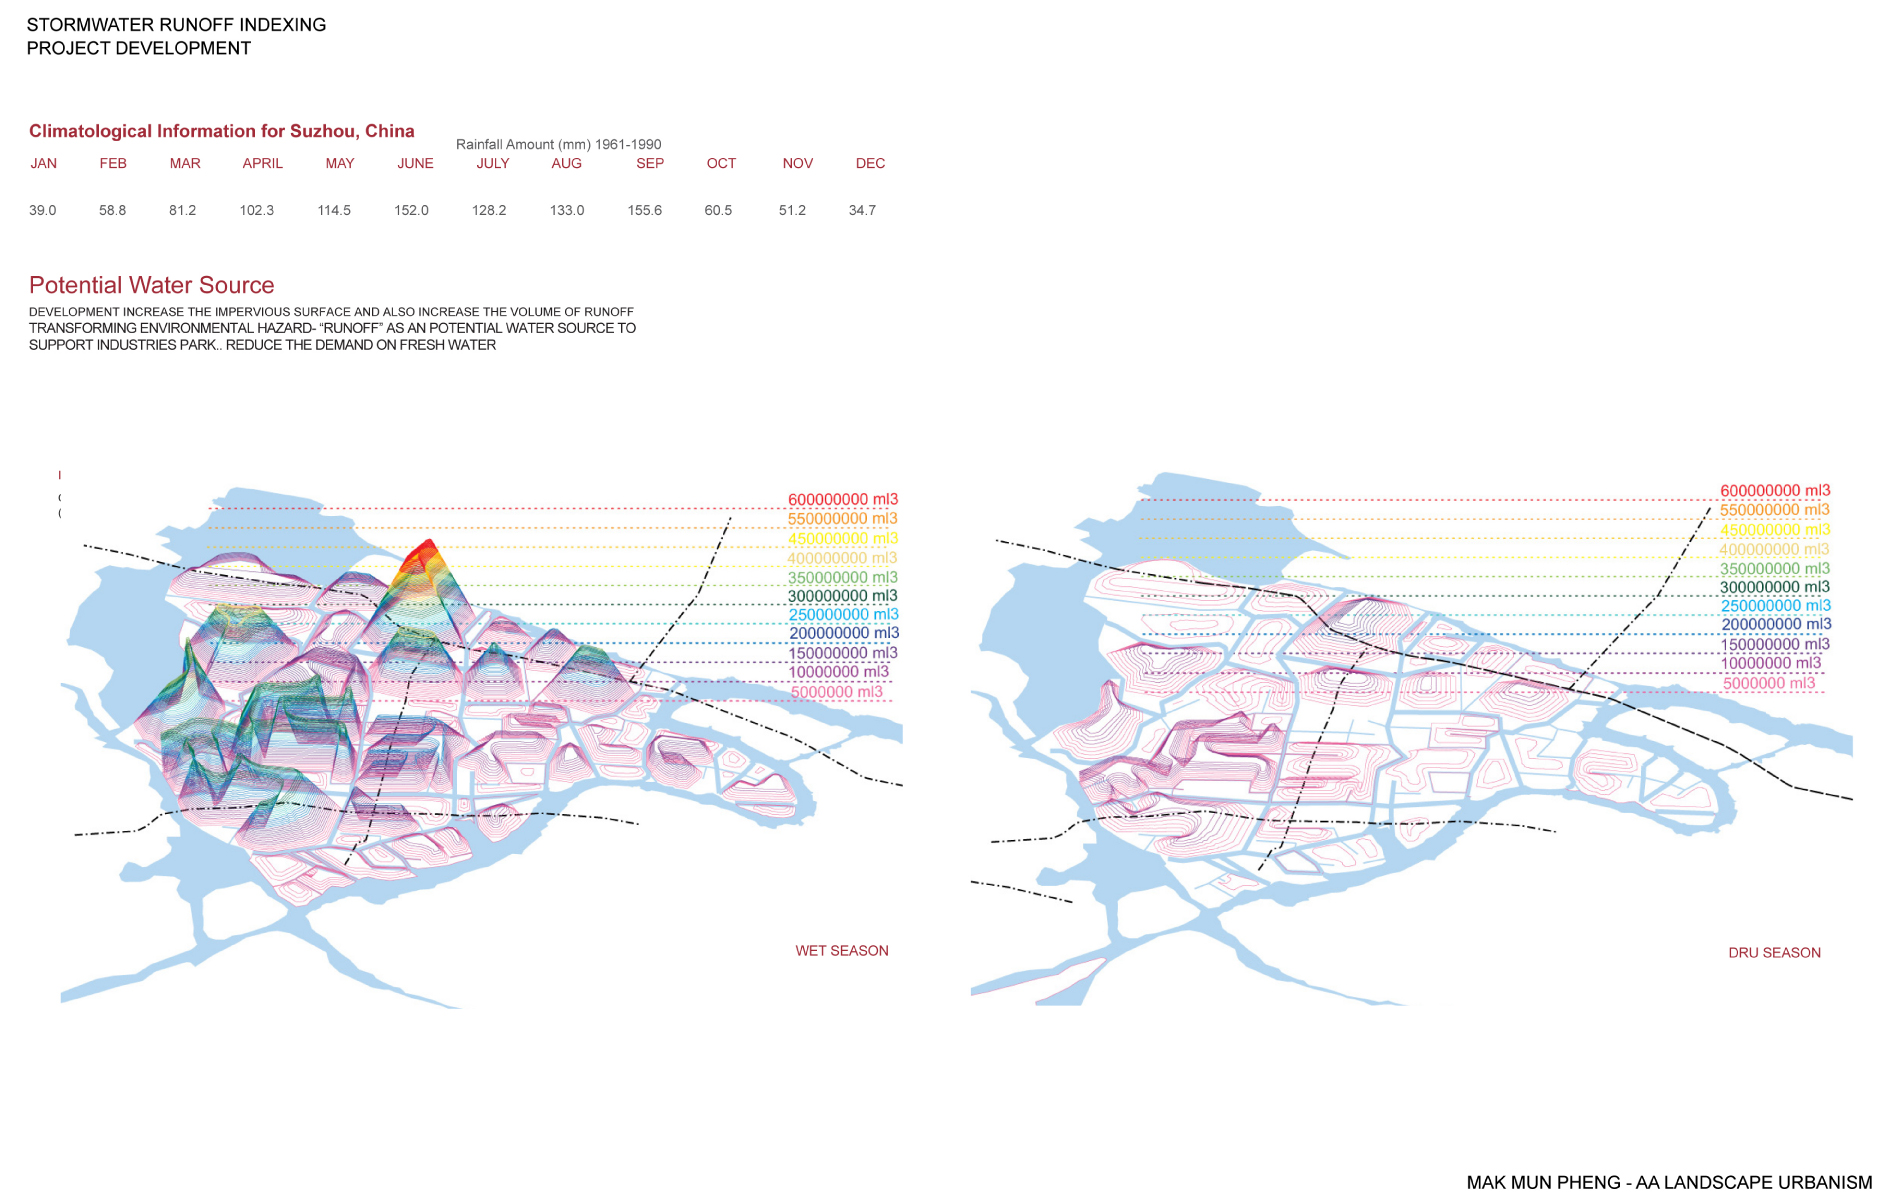 Projects Review 2010 - Landscape Urbanism - Mak Mun Pheng